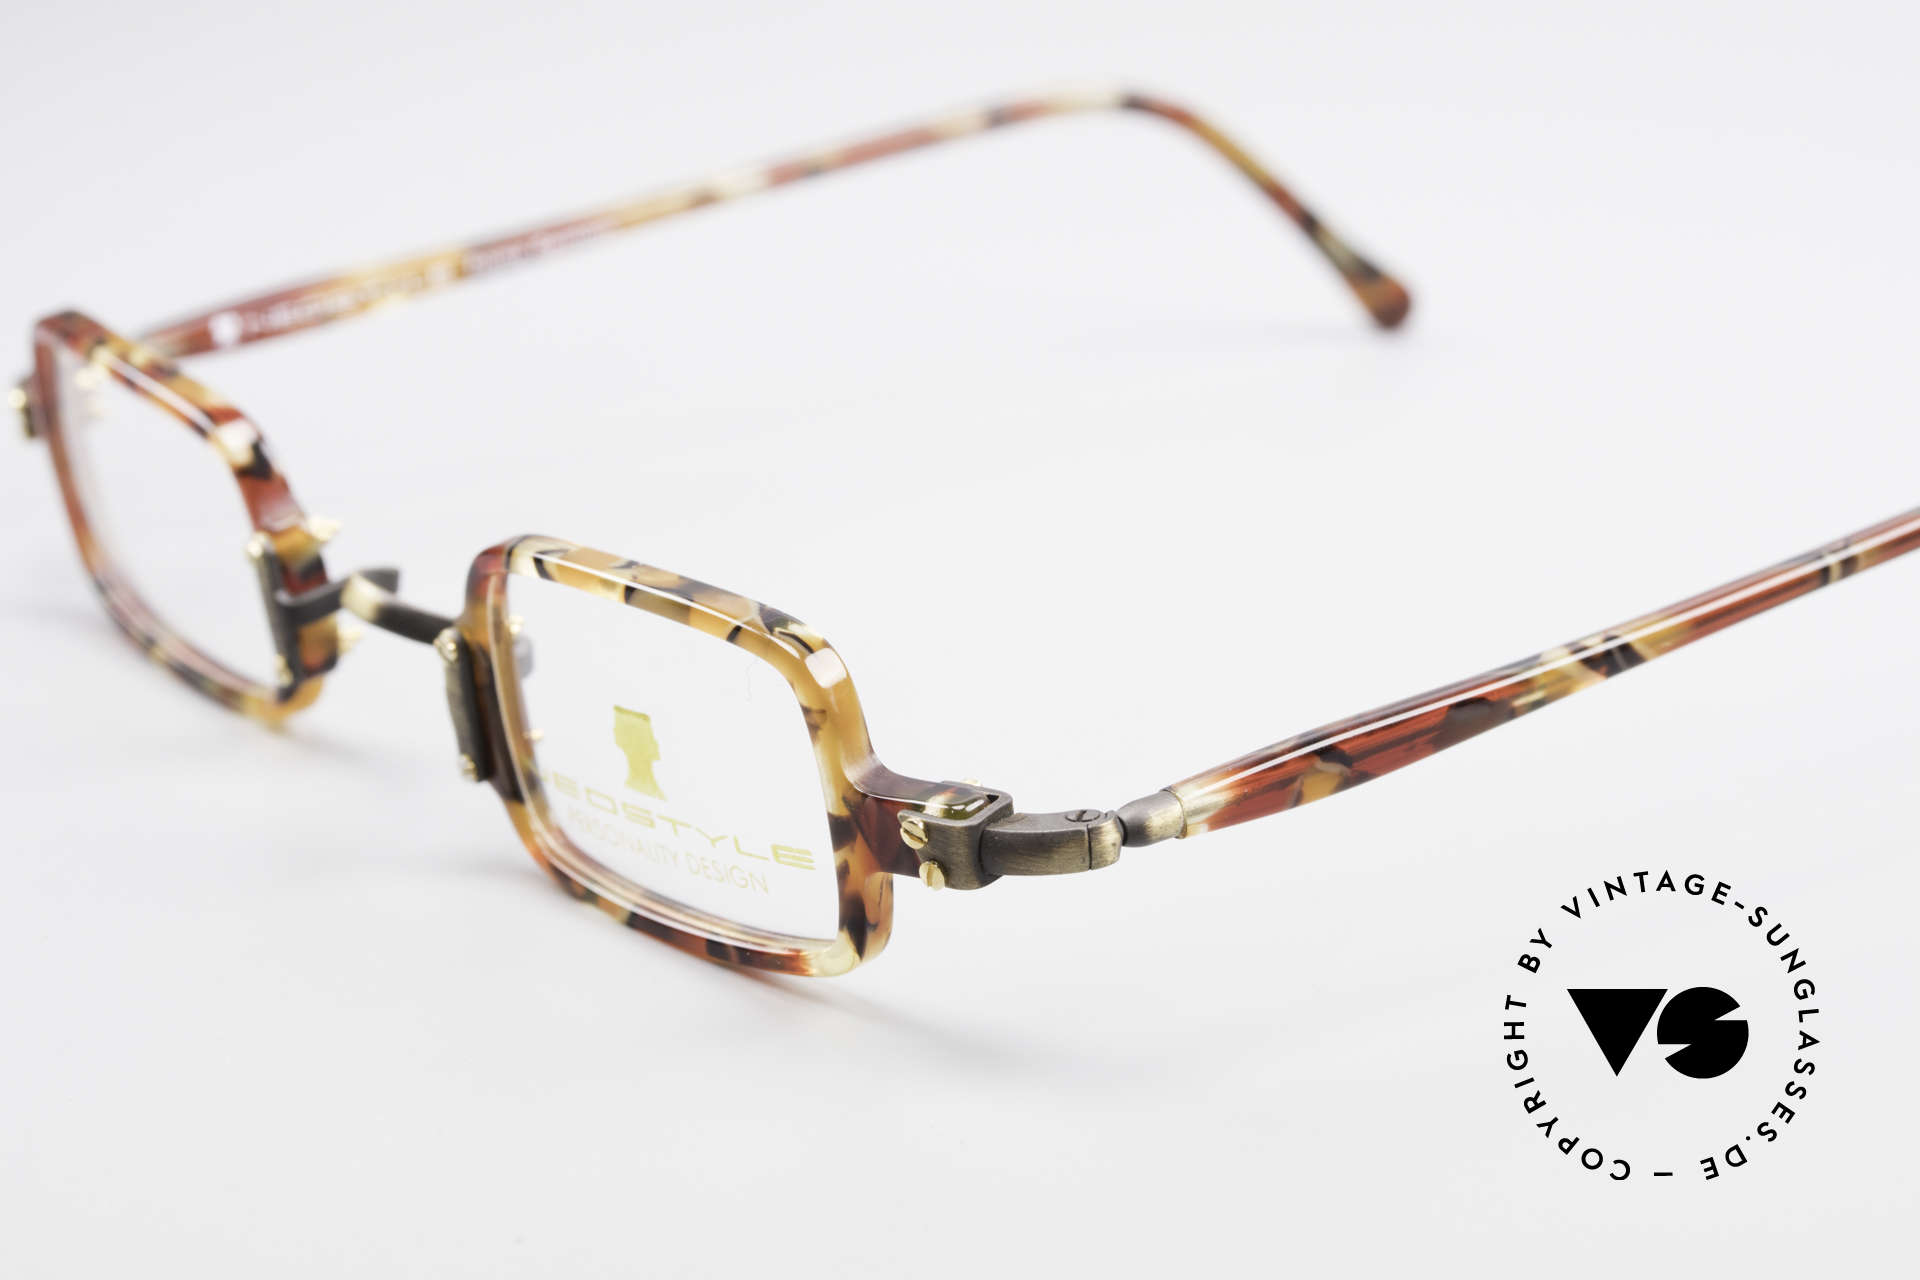 Neostyle Bistro 172 Square Vintage Unisex Frame, never worn (like all our classic Neostyle frames), Made for Men and Women